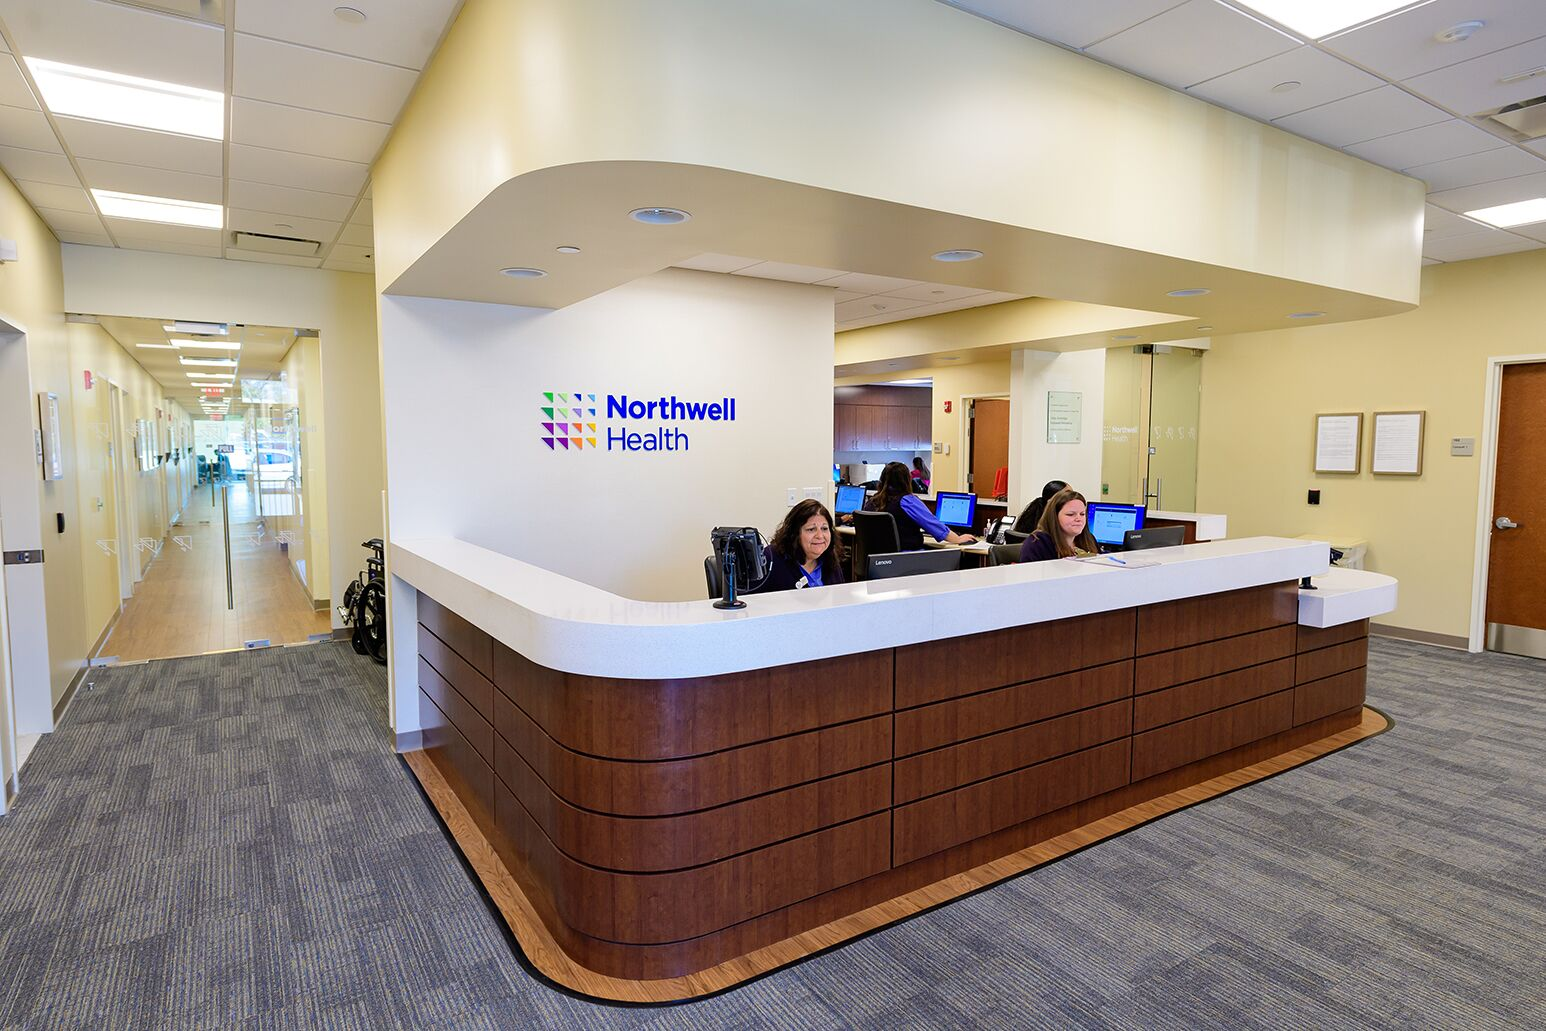 Northwell Health Medicine Specialties is located at 256-11 Union Turnpike in Glen Oaks.